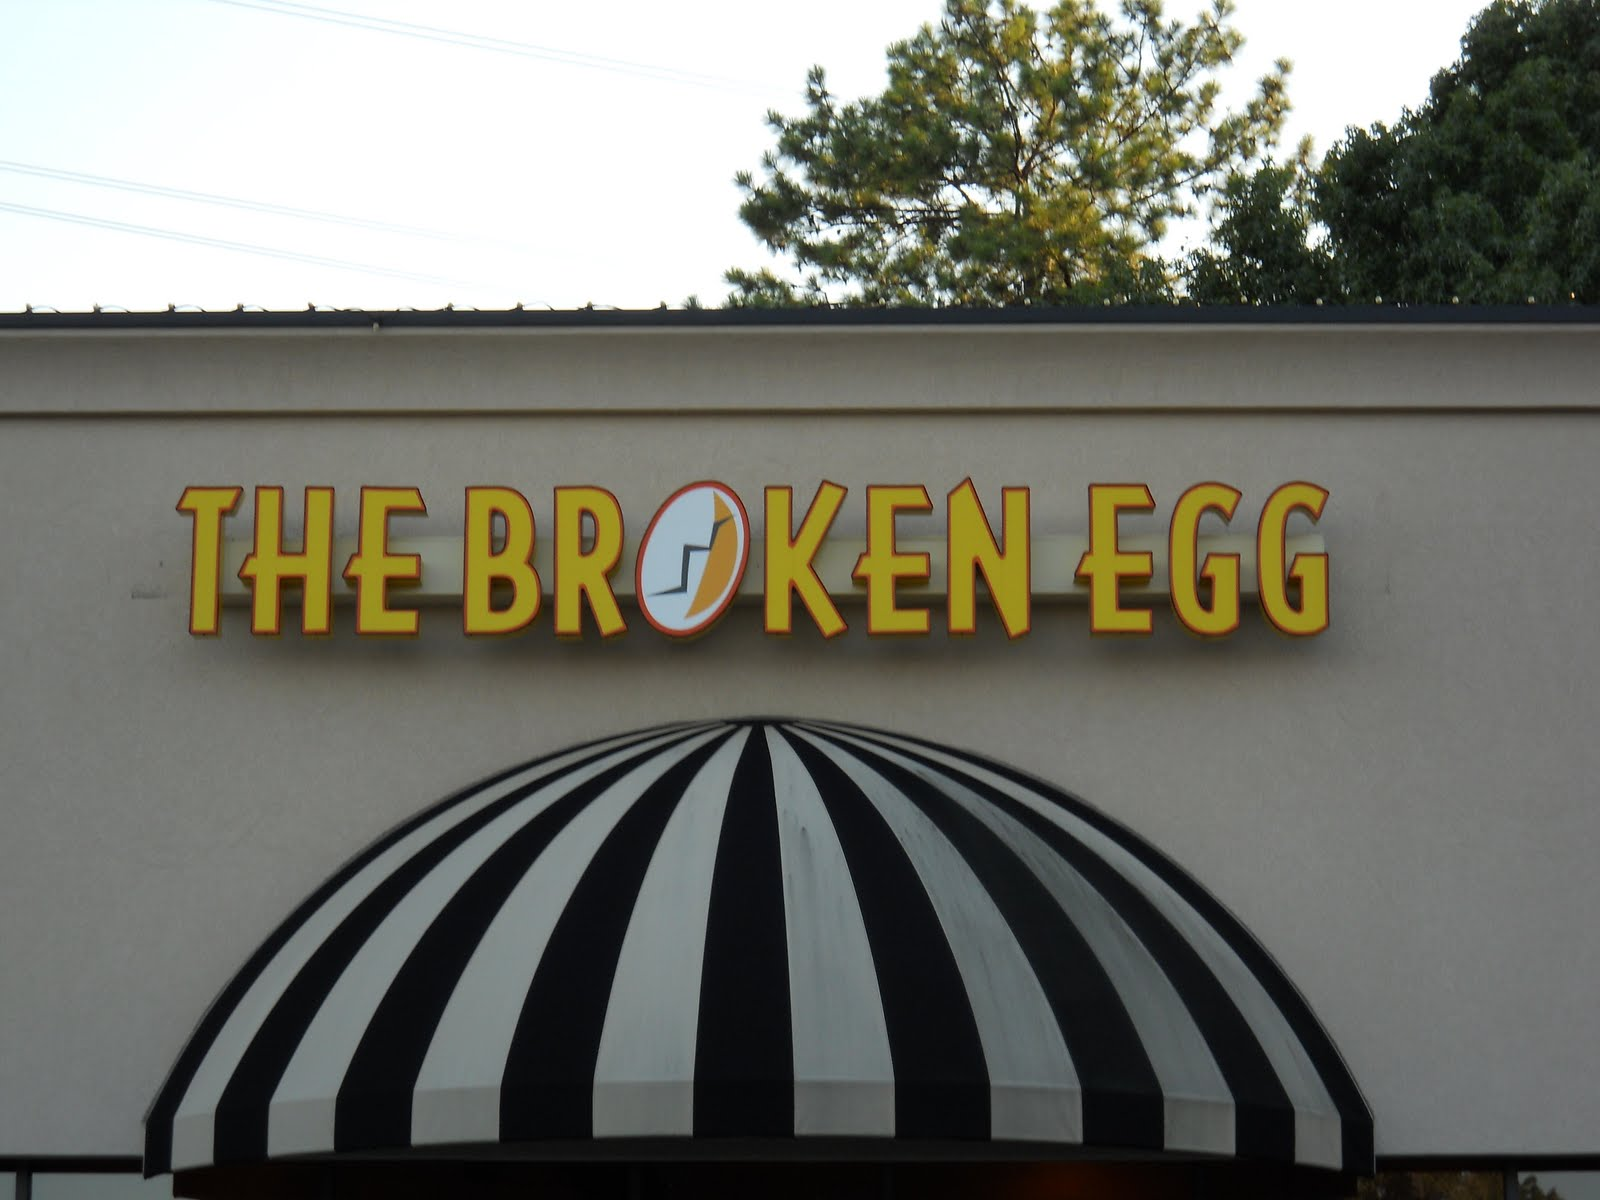 pow the broken eggs Create an account or log into facebook connect with friends, family and other people you know share photos and videos, send messages and get updates.